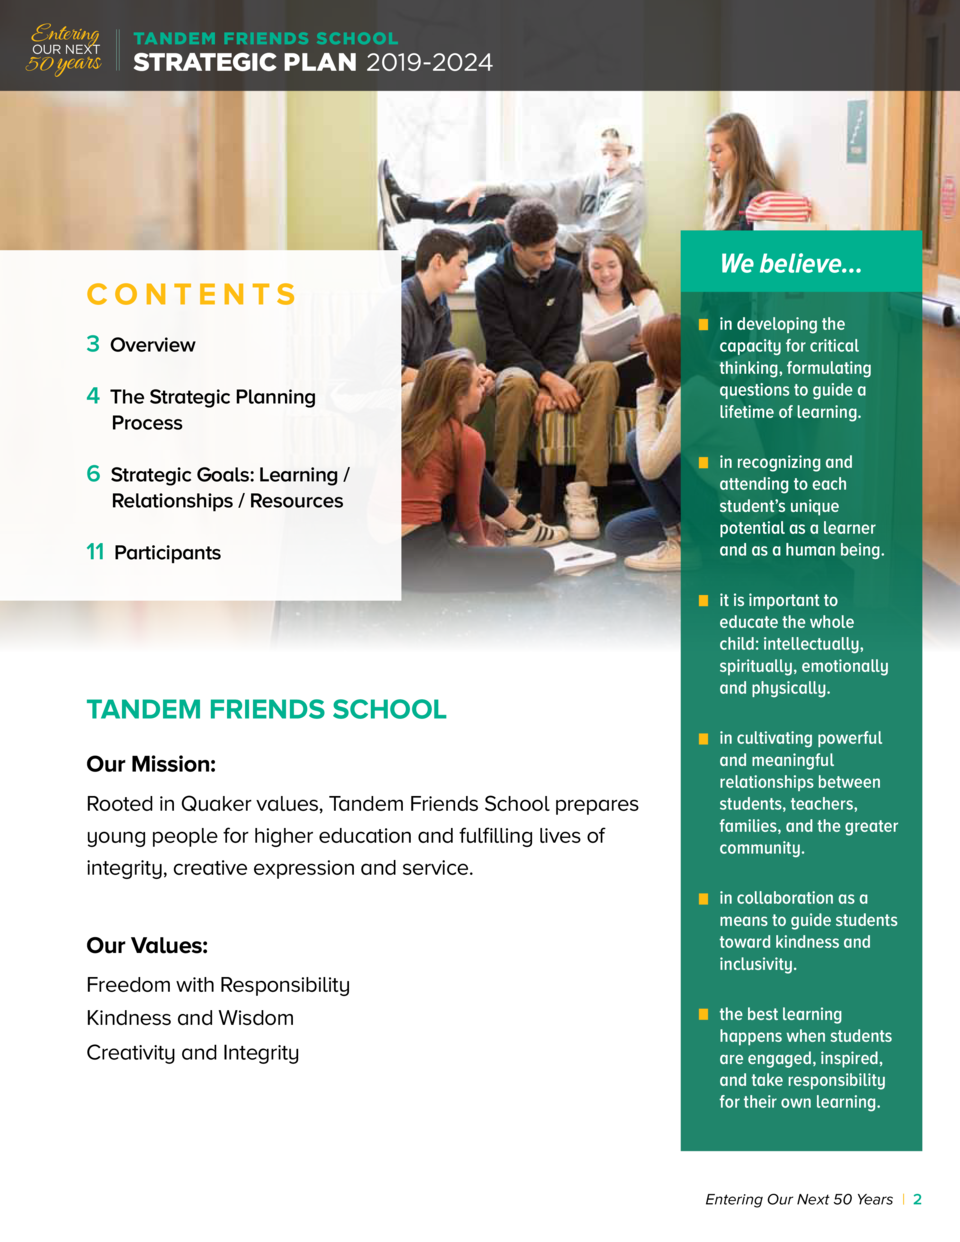 Entering  OUR NEXT  50 years  TANDEM FRIENDS SCHOOL  STRATEGIC PLAN 2019-2024  CONTENTS 3 Overview 4 The Strategic Plannin...